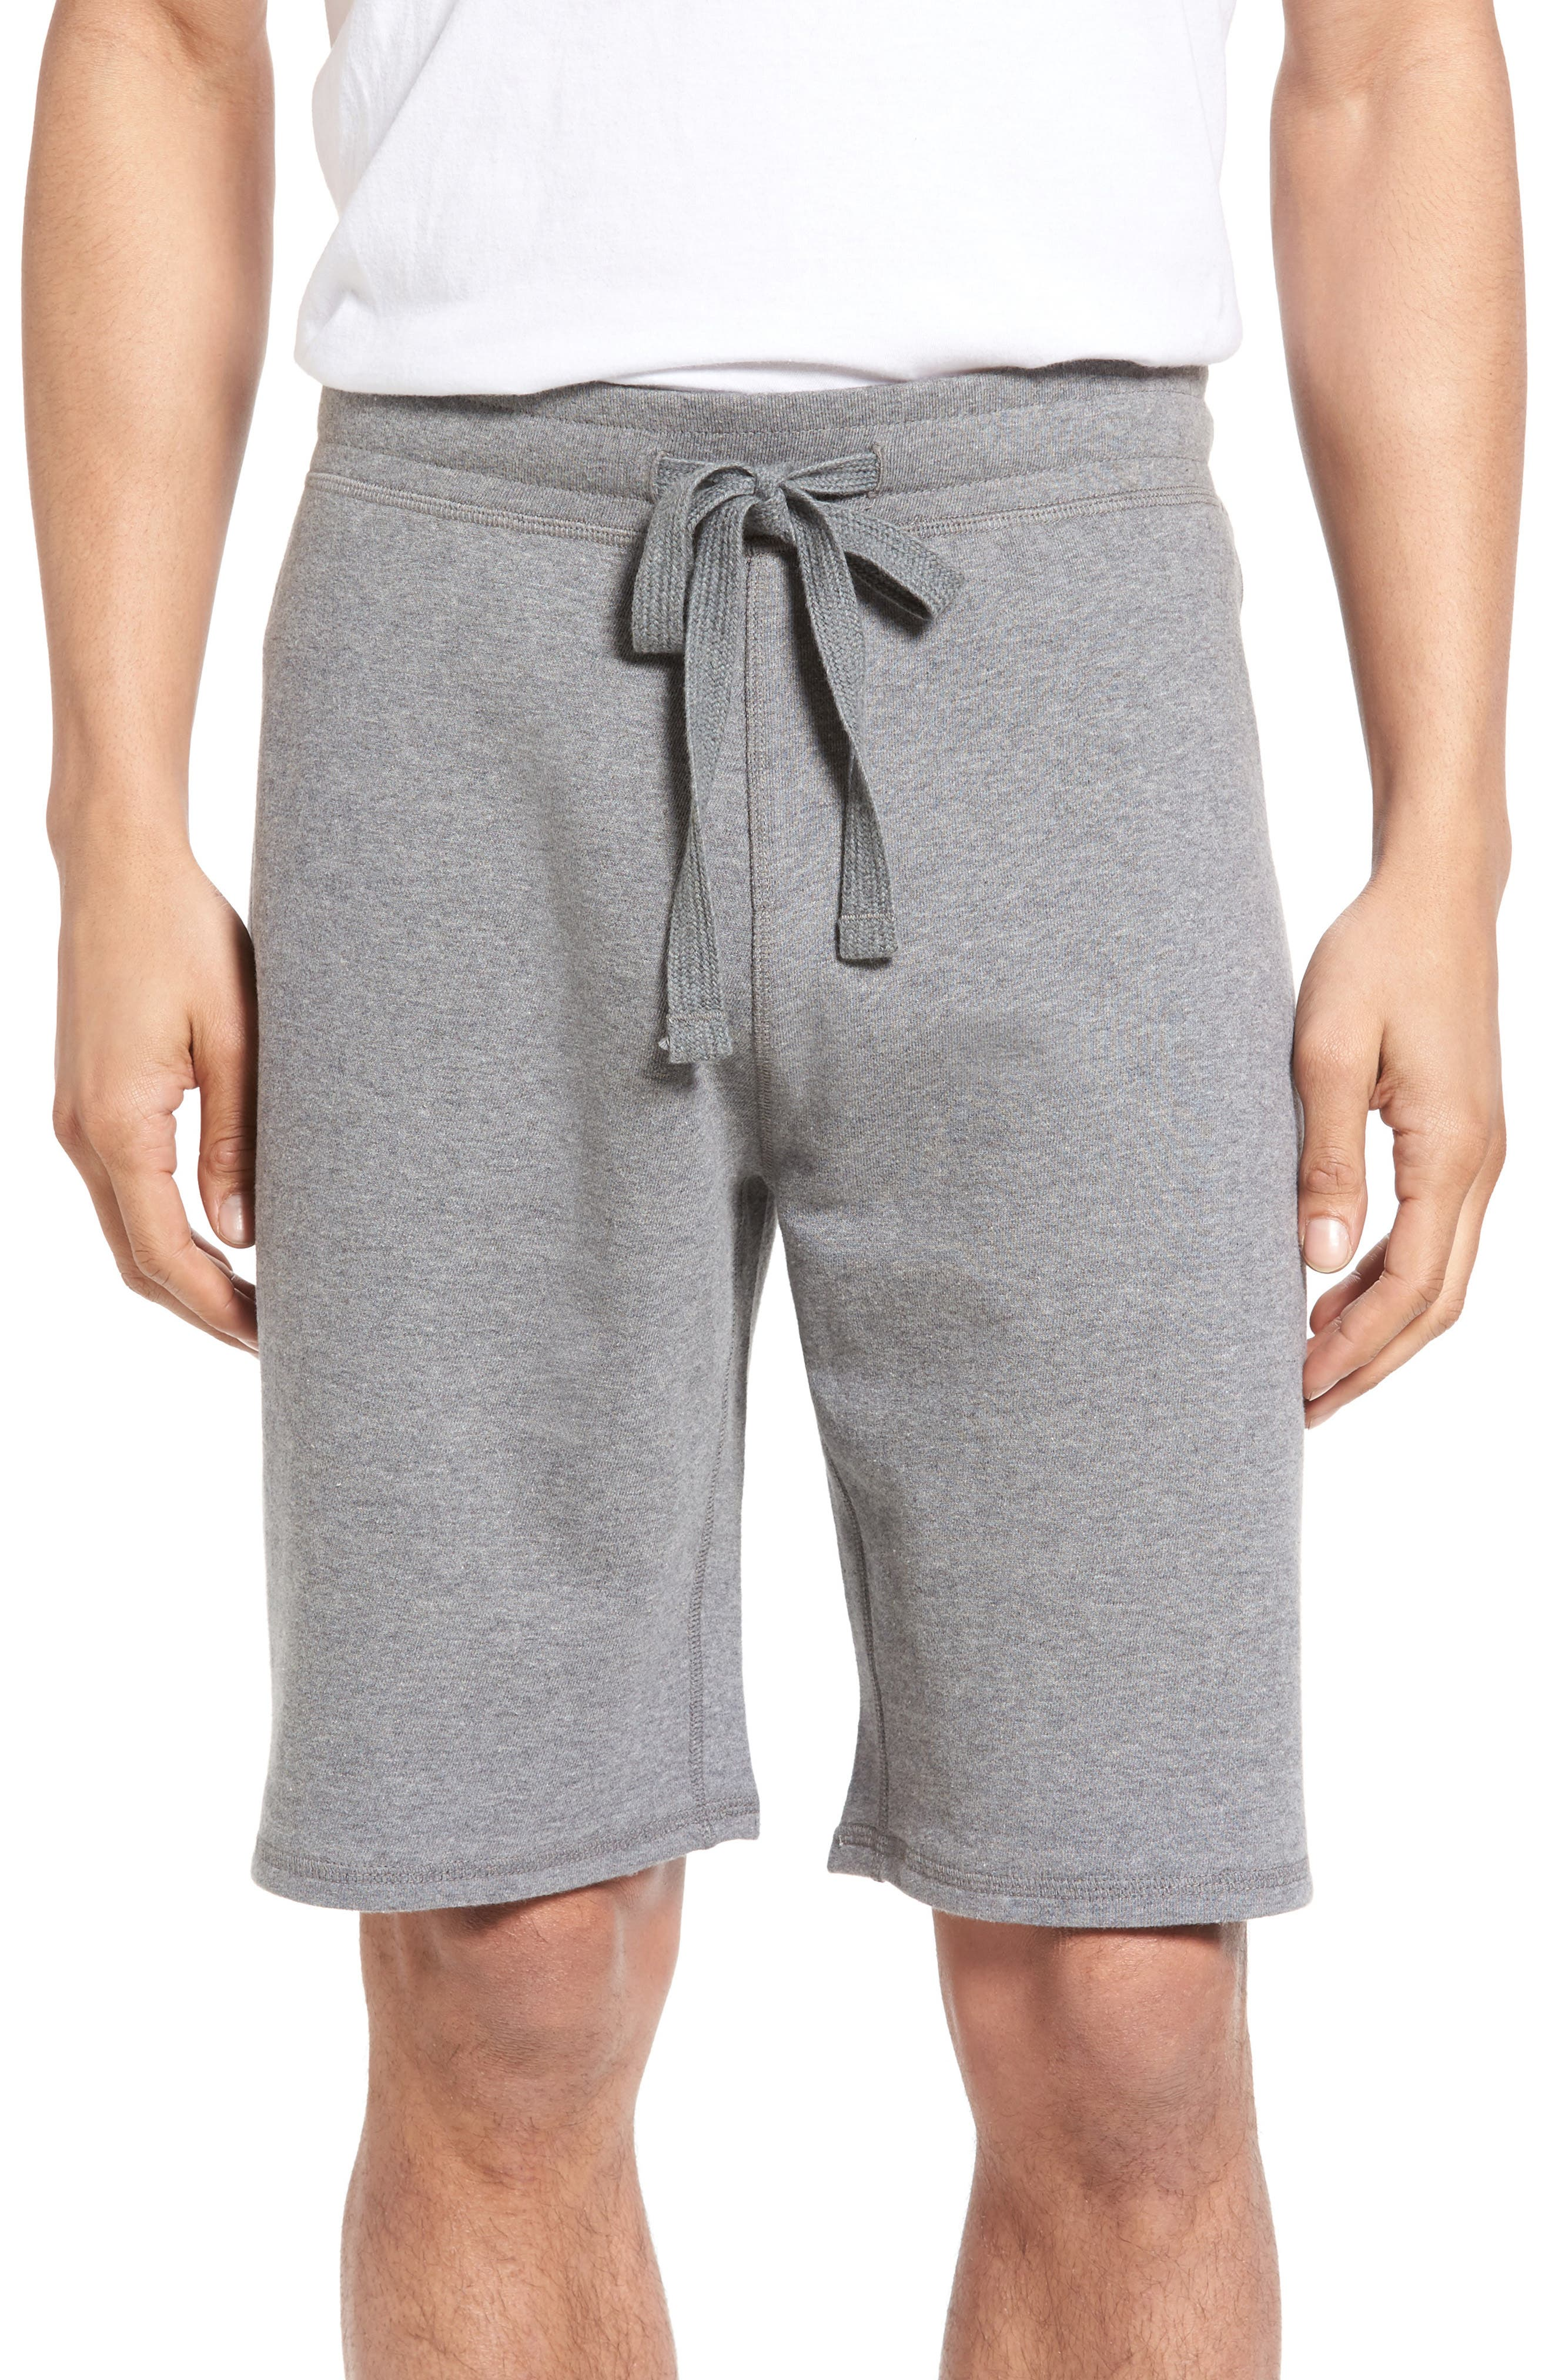 Reversible French Terry Sweat Shorts,                         Main,                         color, Grey Heatehr/ Feeder Stripe